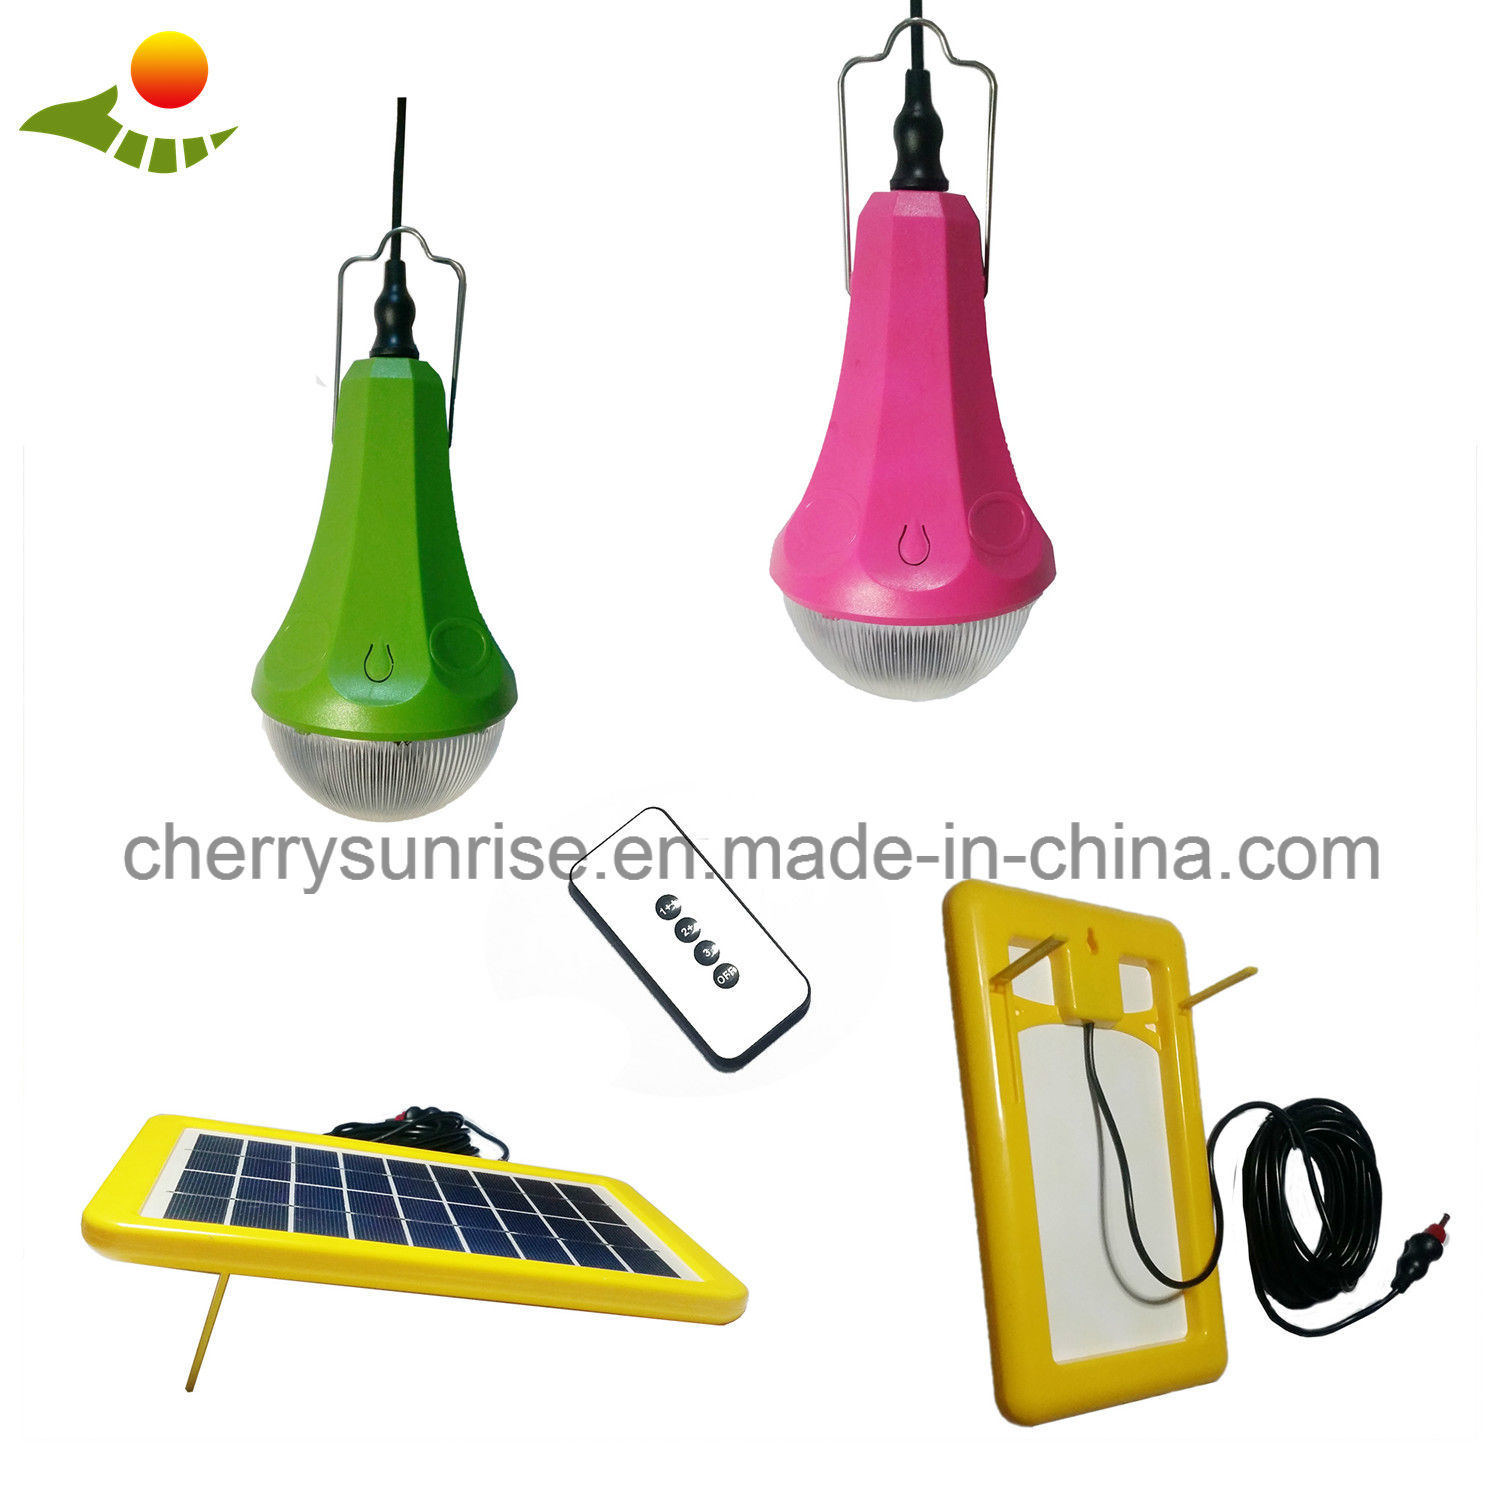 China Small Home Solar Panel Kit Solar Power System Portable Solar ...